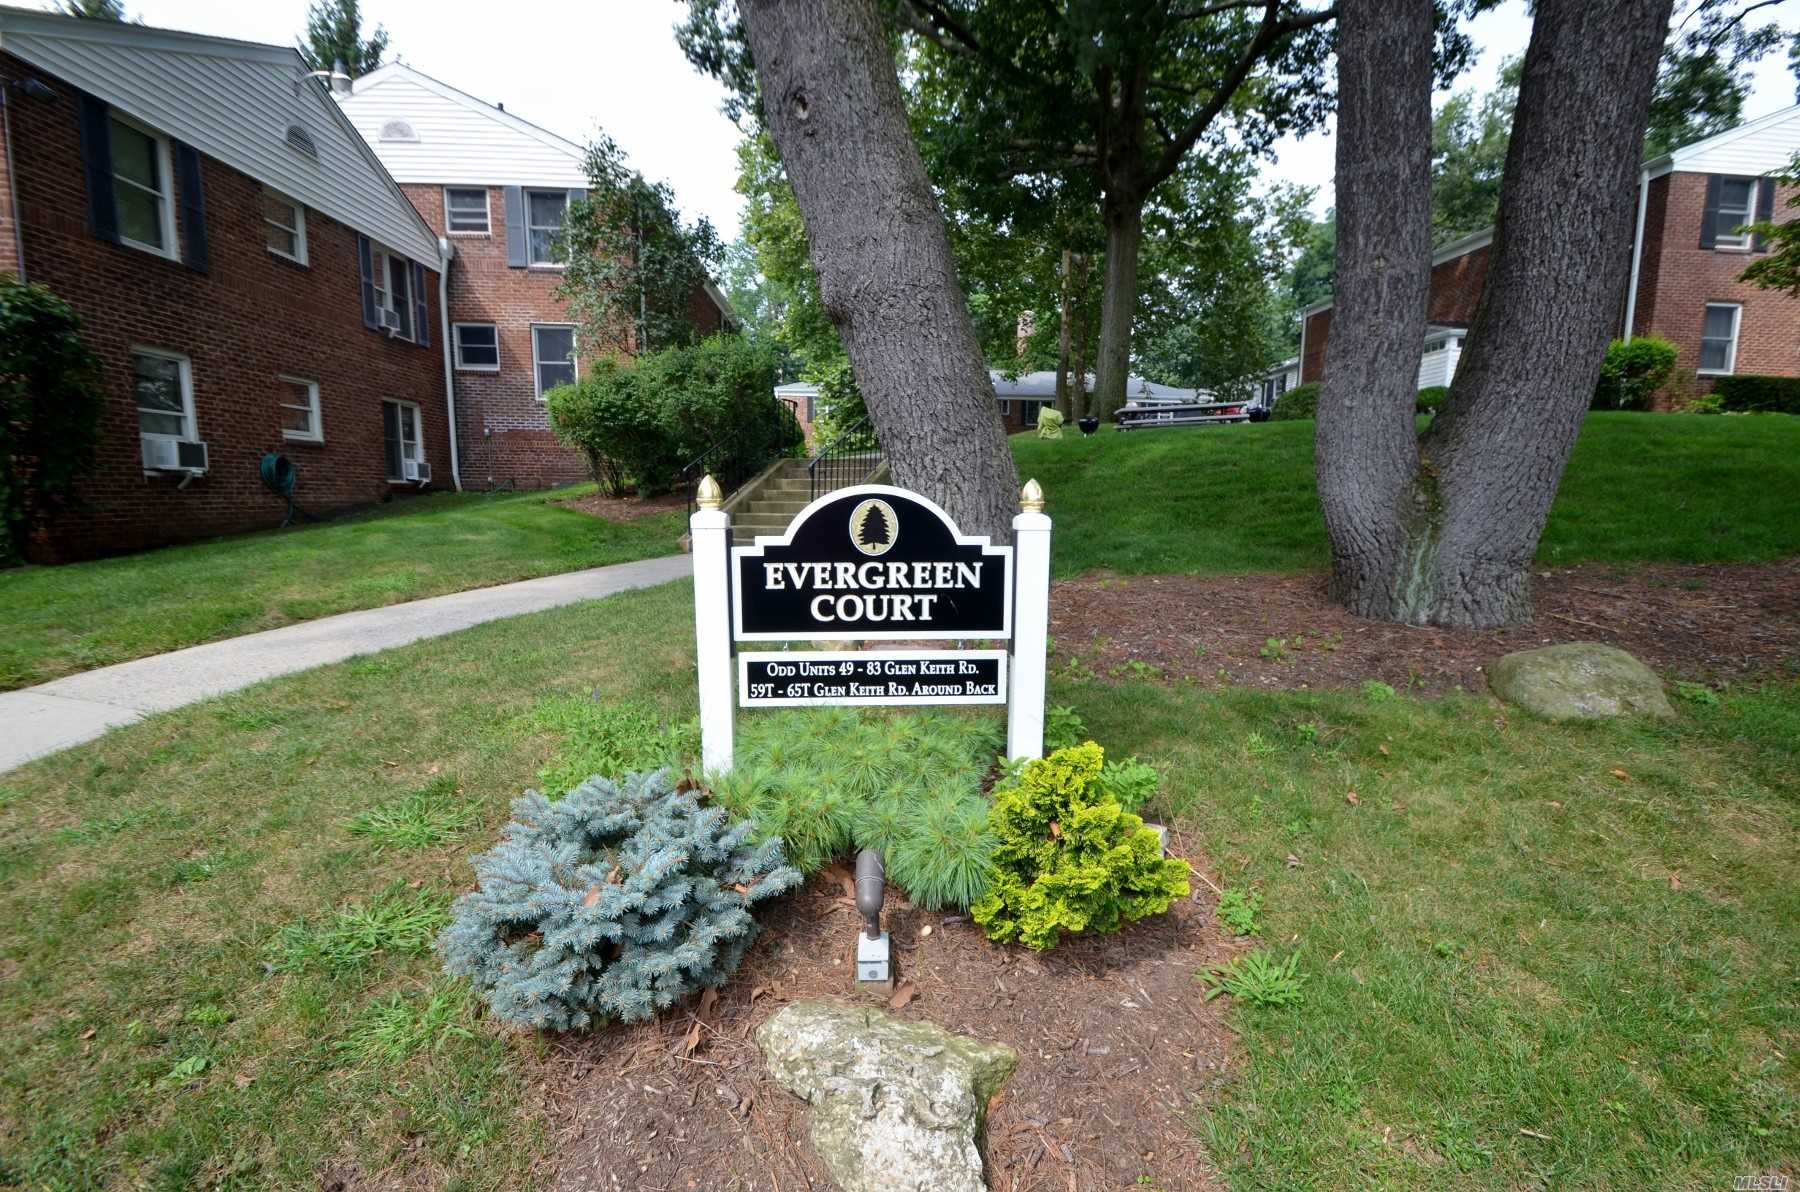 Beautifully Maintained 1 Bedroom On First Floor. Laundry Facilities, Fitness Center, Reserved Parking Space, Outdoor Bbq Area. Renovated Community Center W/Game Tables, Meeting Space & Kitchen. Playground. Onsite Property Management & Maintenance Staff, Dedicated Storage Unit.